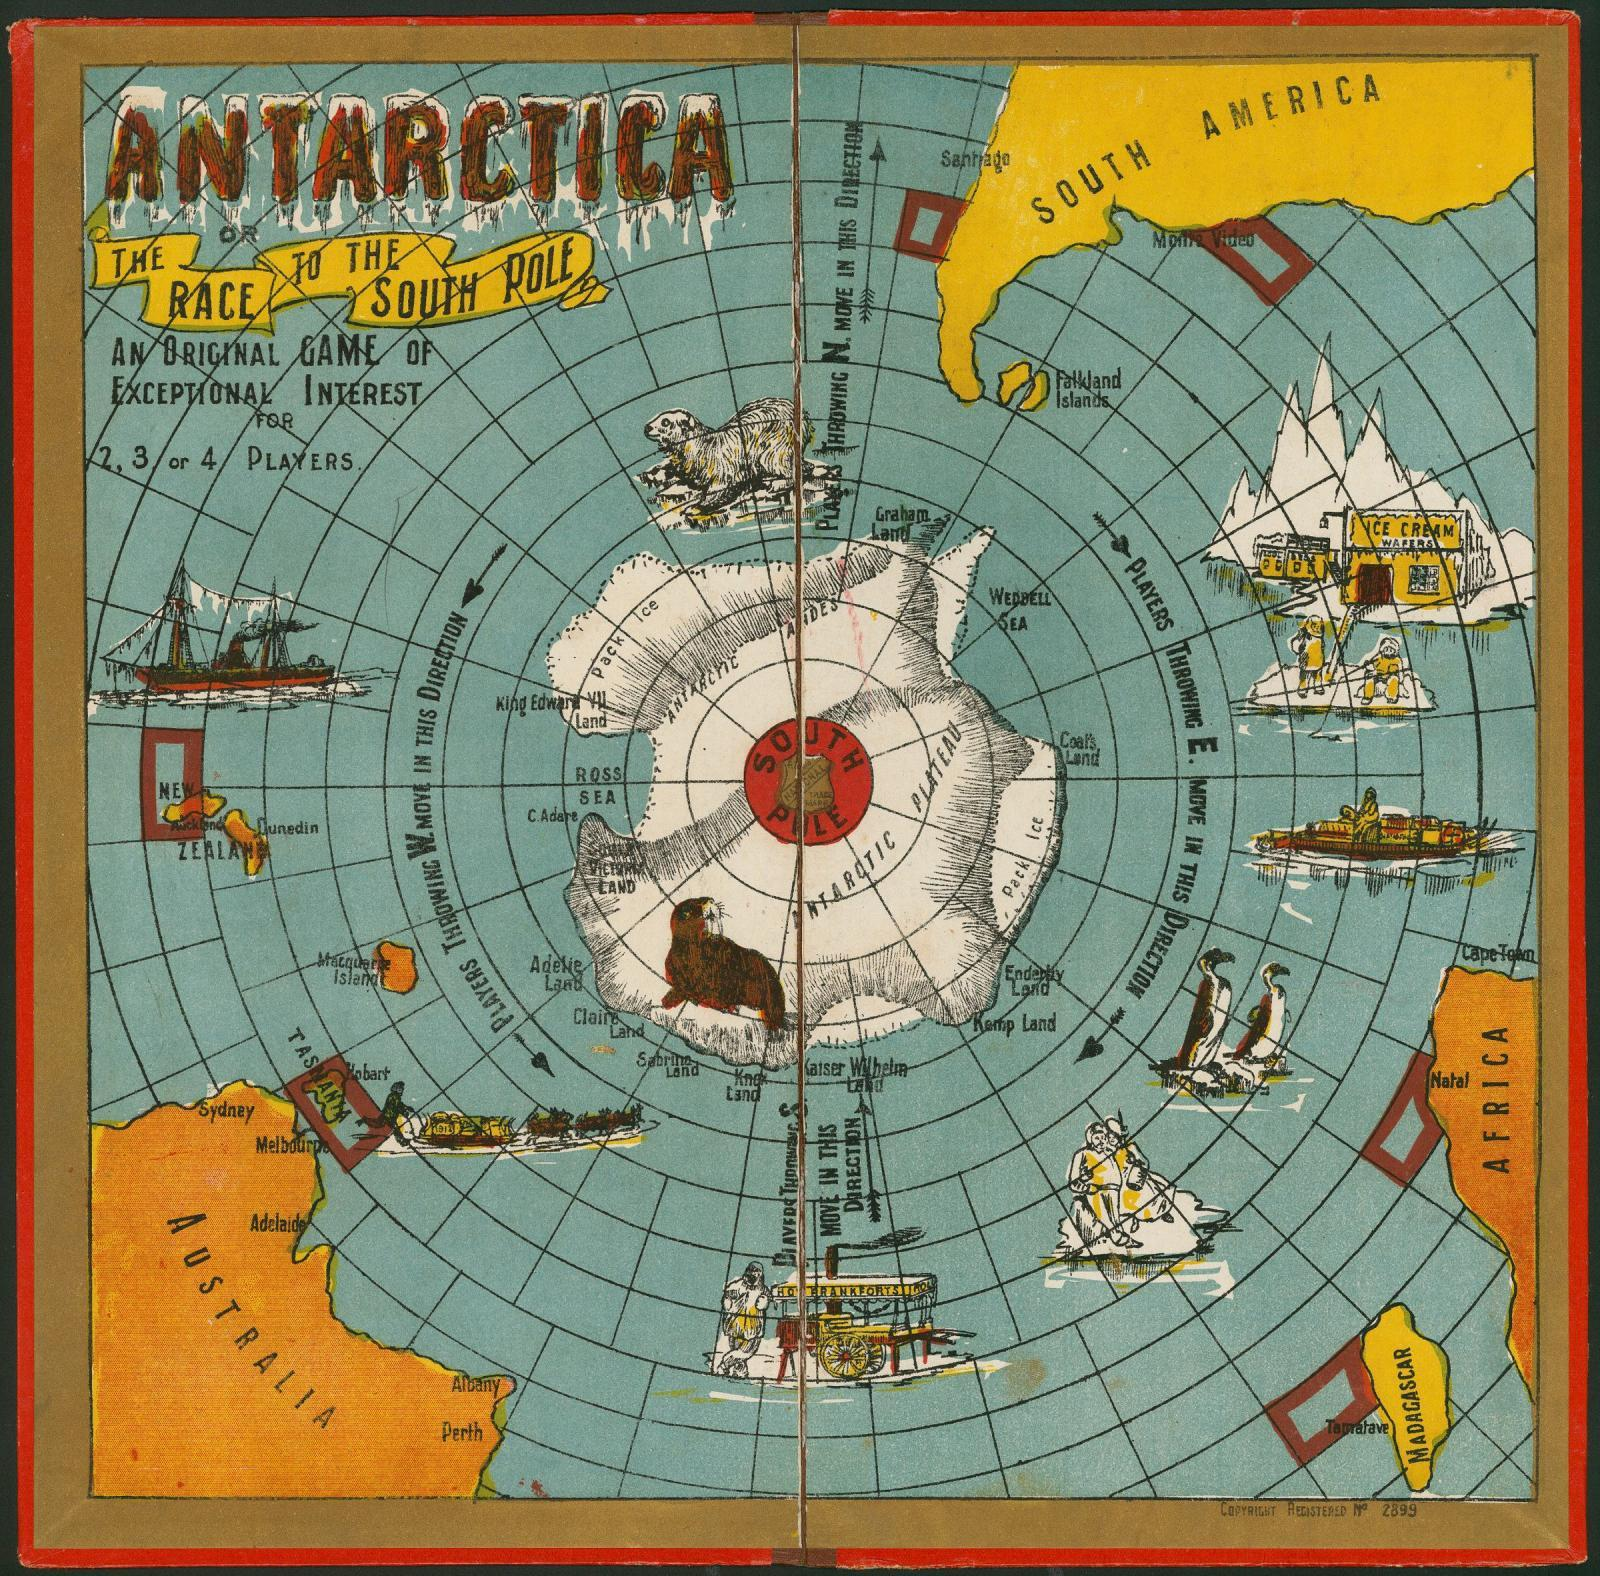 Antarctica: The Race to the South Pole